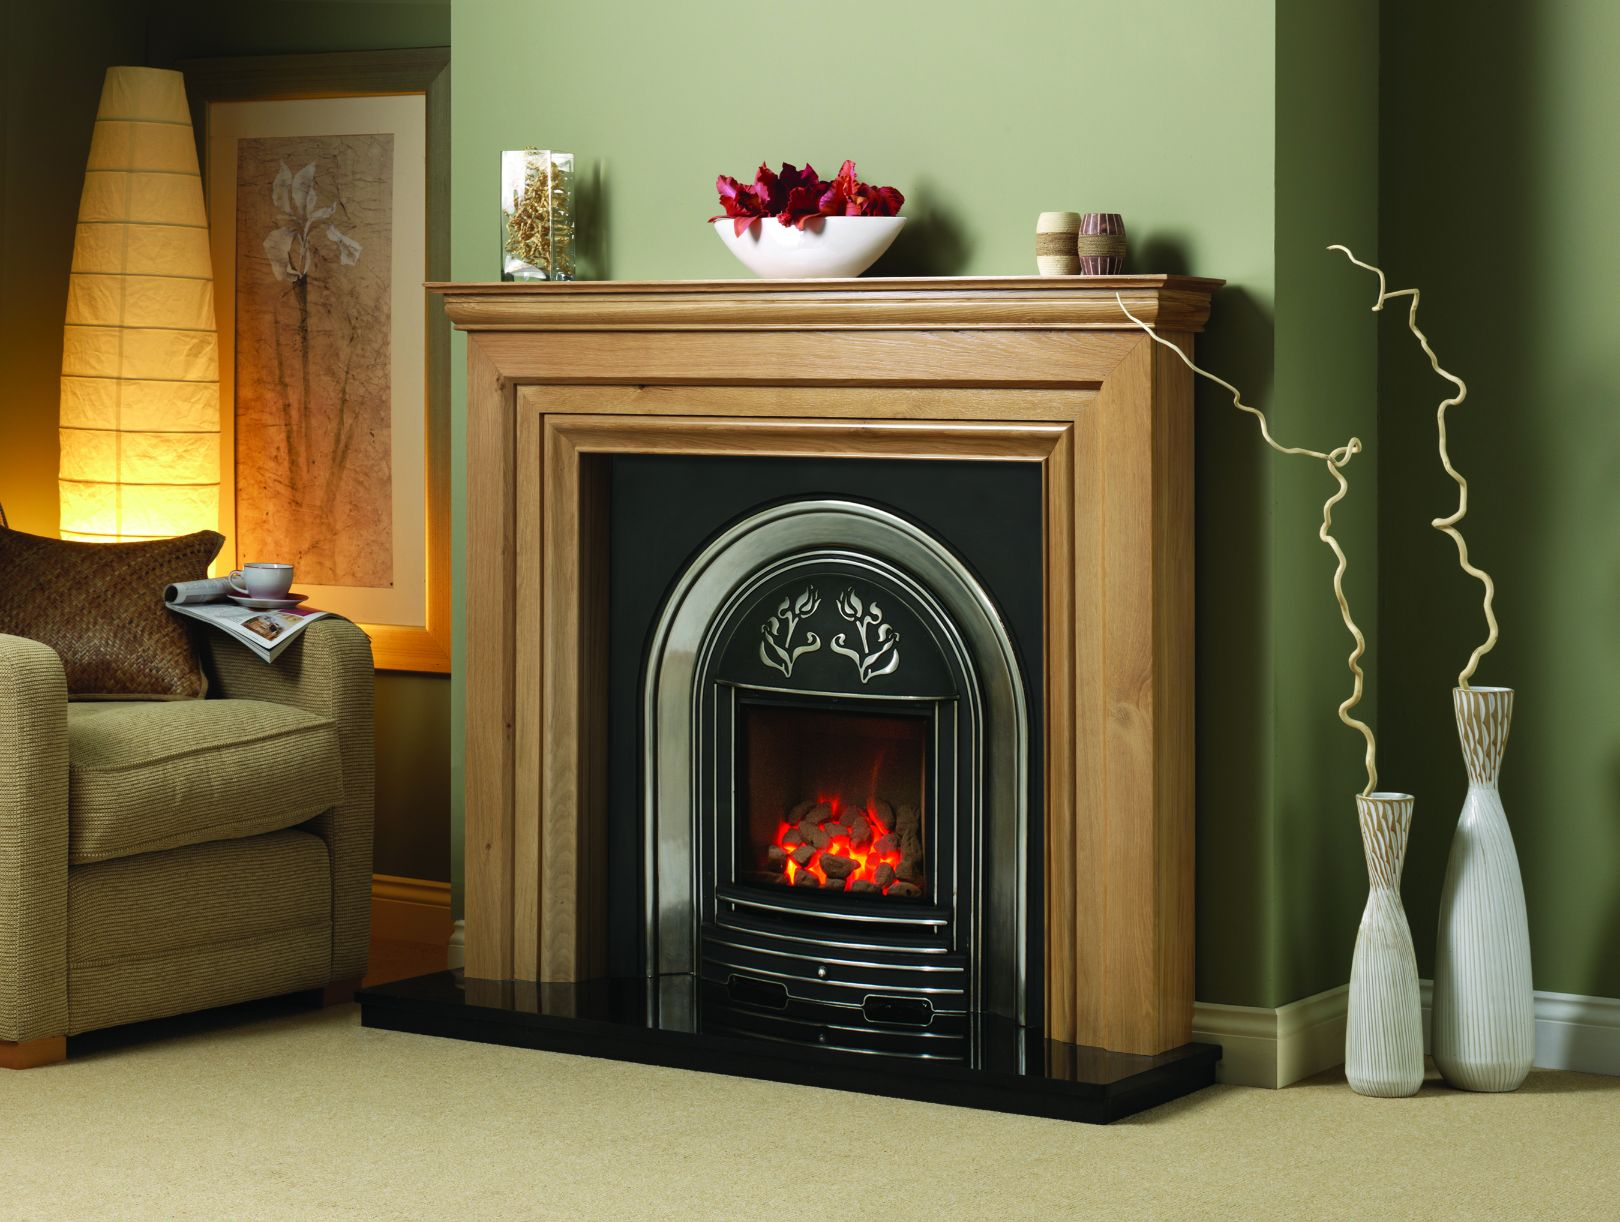 Wooden Mantel with Cast Surround and Granite Hearth, Fireplace Suite